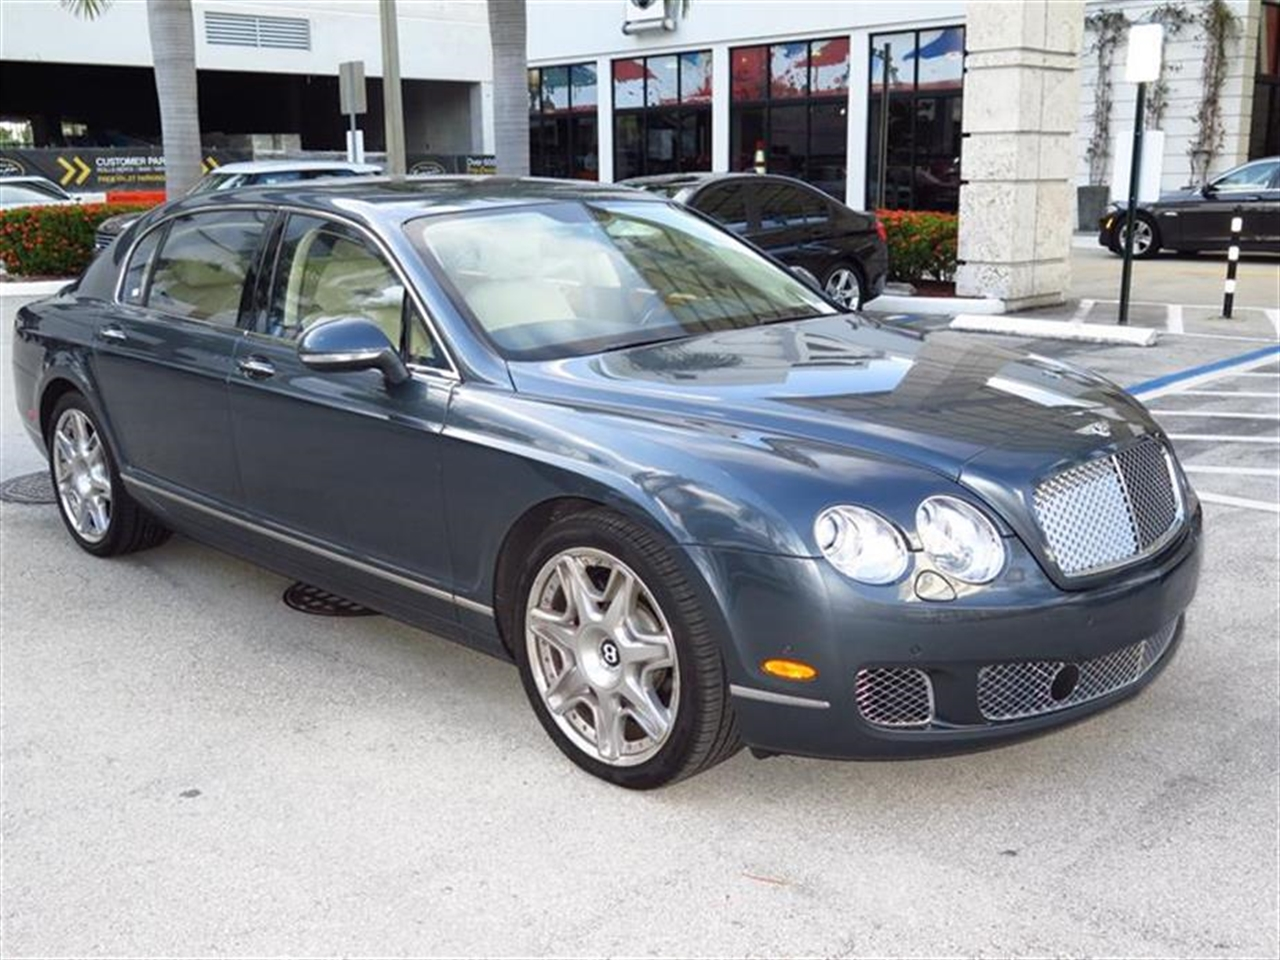 2012 BENTLEY CONTINENTAL FLYING SPUR 4dr Sdn 255 miles 4-spoke monotone leather trimmed steering w